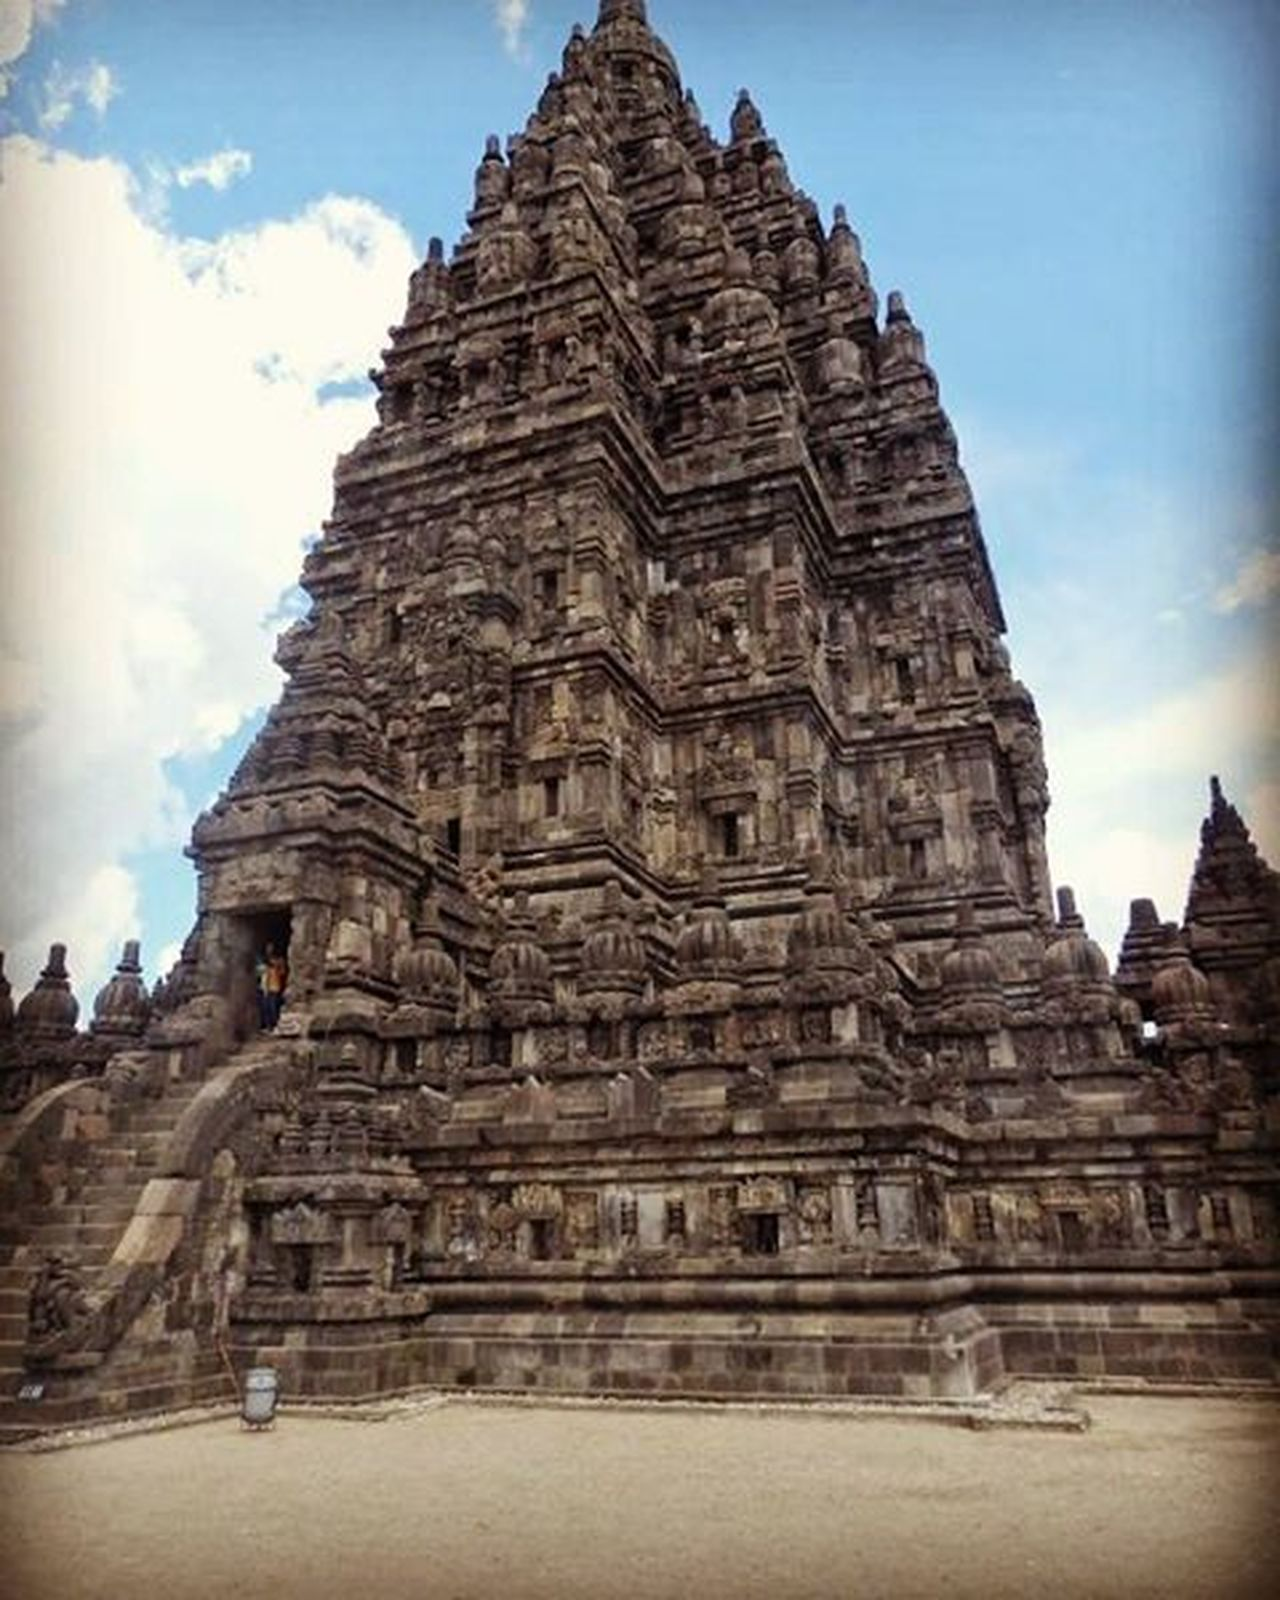 Prambanan Temple in Indonesia ThousandMilesJourney.com ASIA INDONESIA Java Explorejogja Exploreklaten Backpacking Traveling Travelaroundtheworld Temples Prambanan Ruins